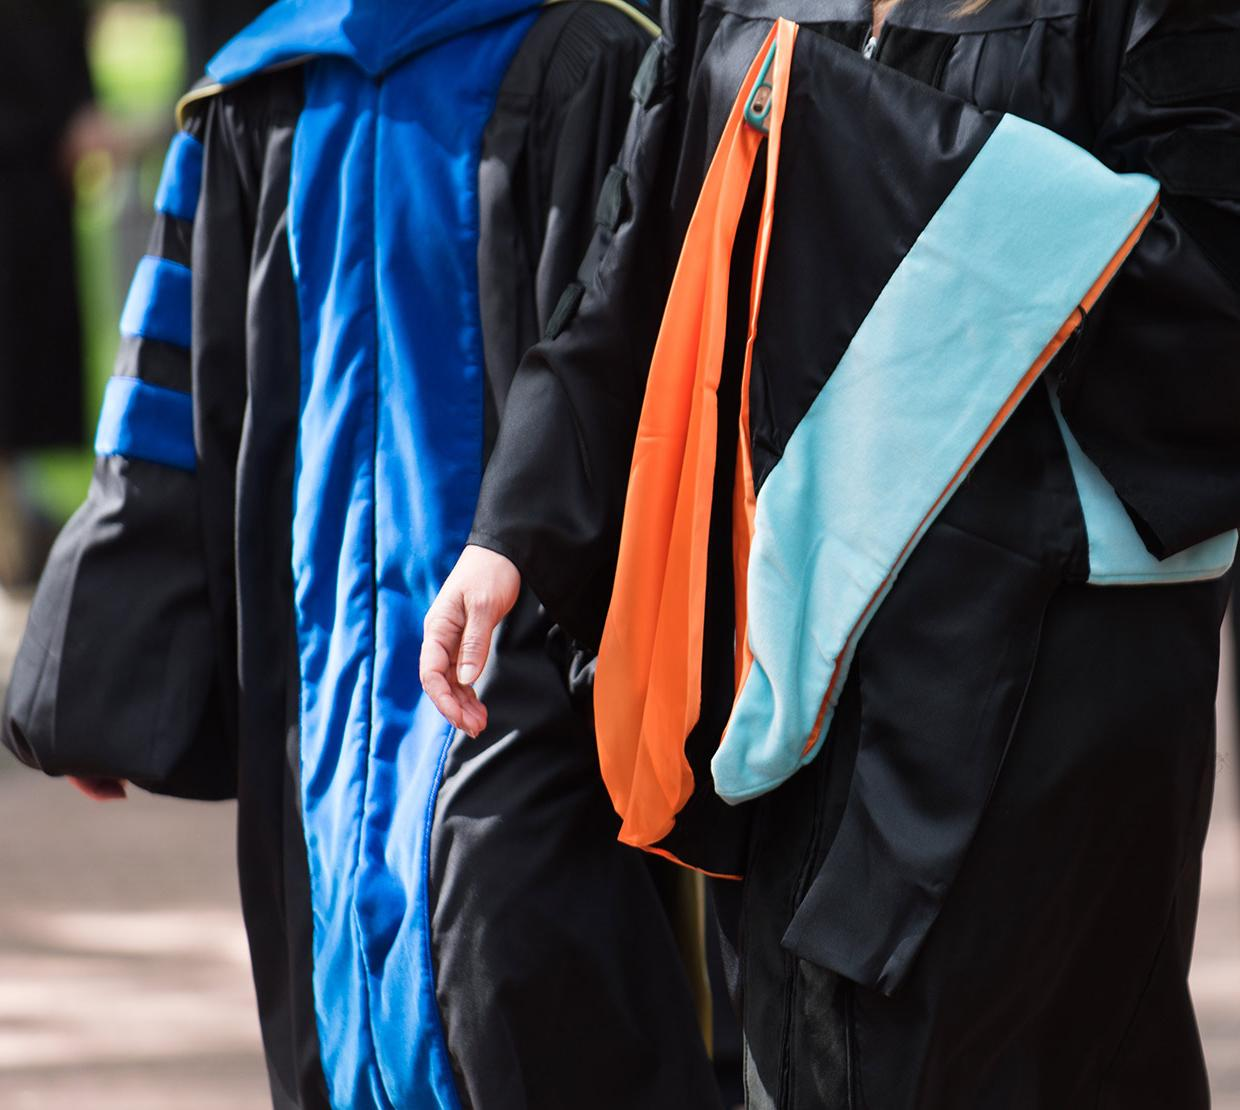 Two professors walking in doctoral gowns on campus